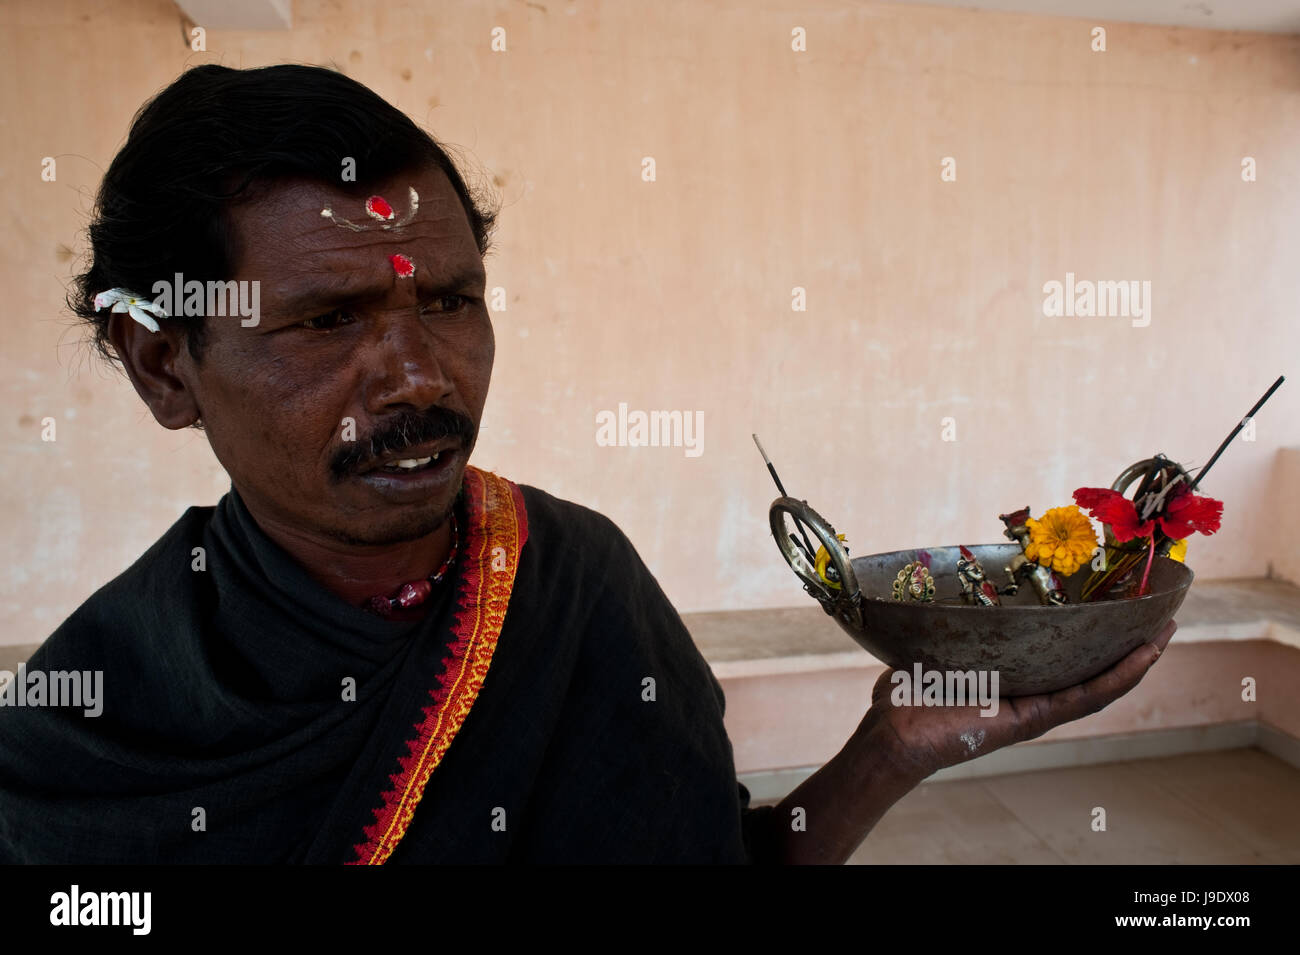 Worshipper of Shani god ( India). Shani is one of the most revered hindu deities. - Stock Image